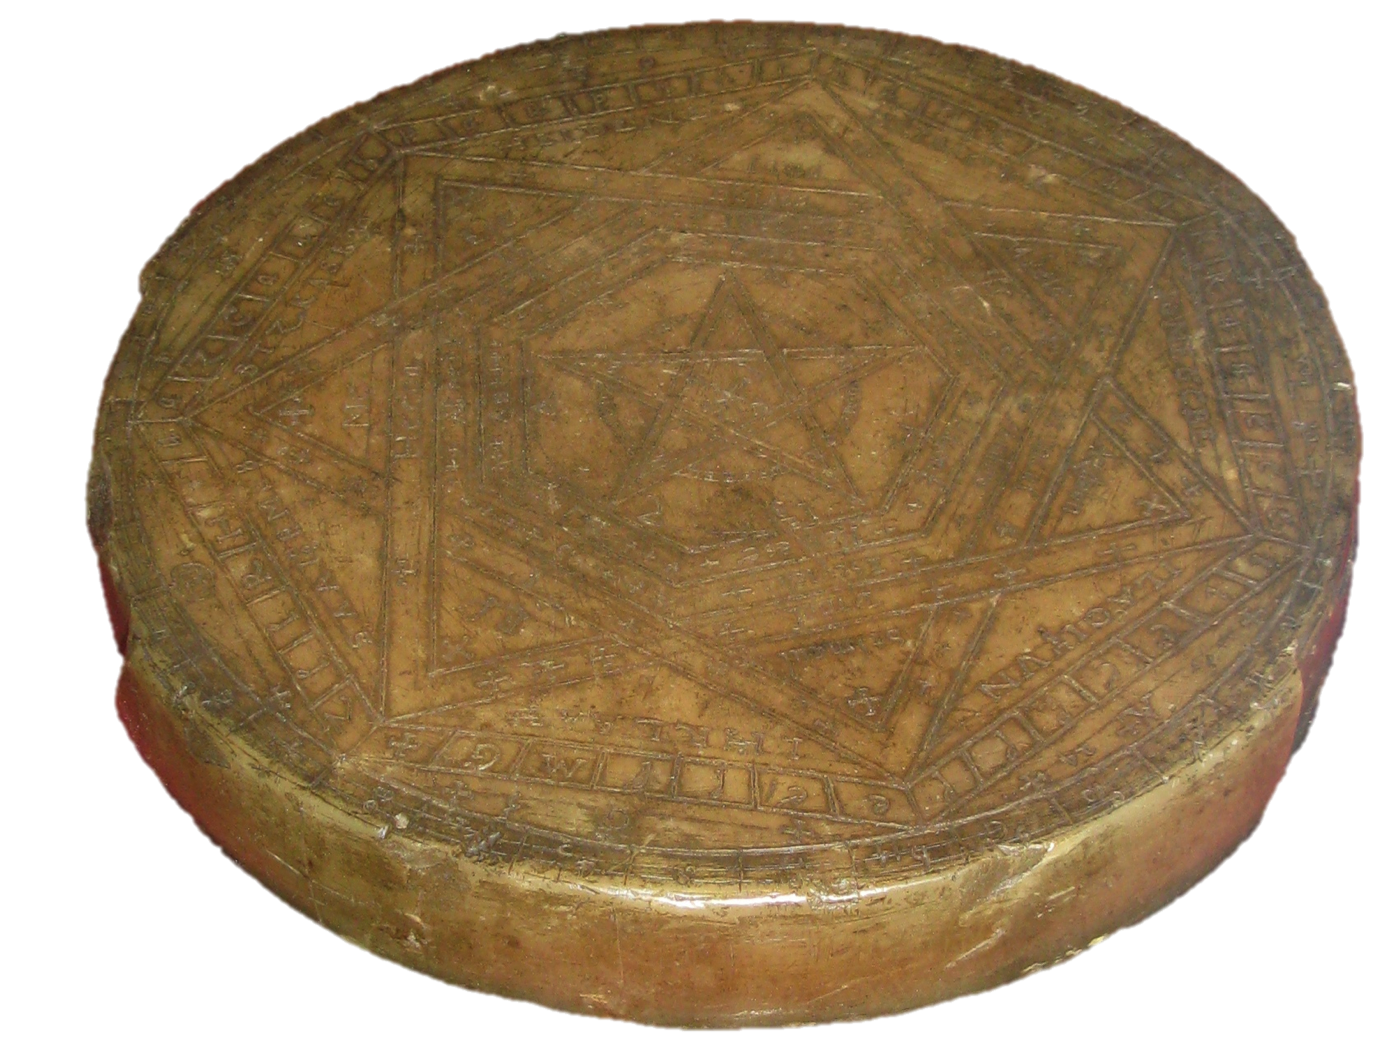 John Dee's Seal of God